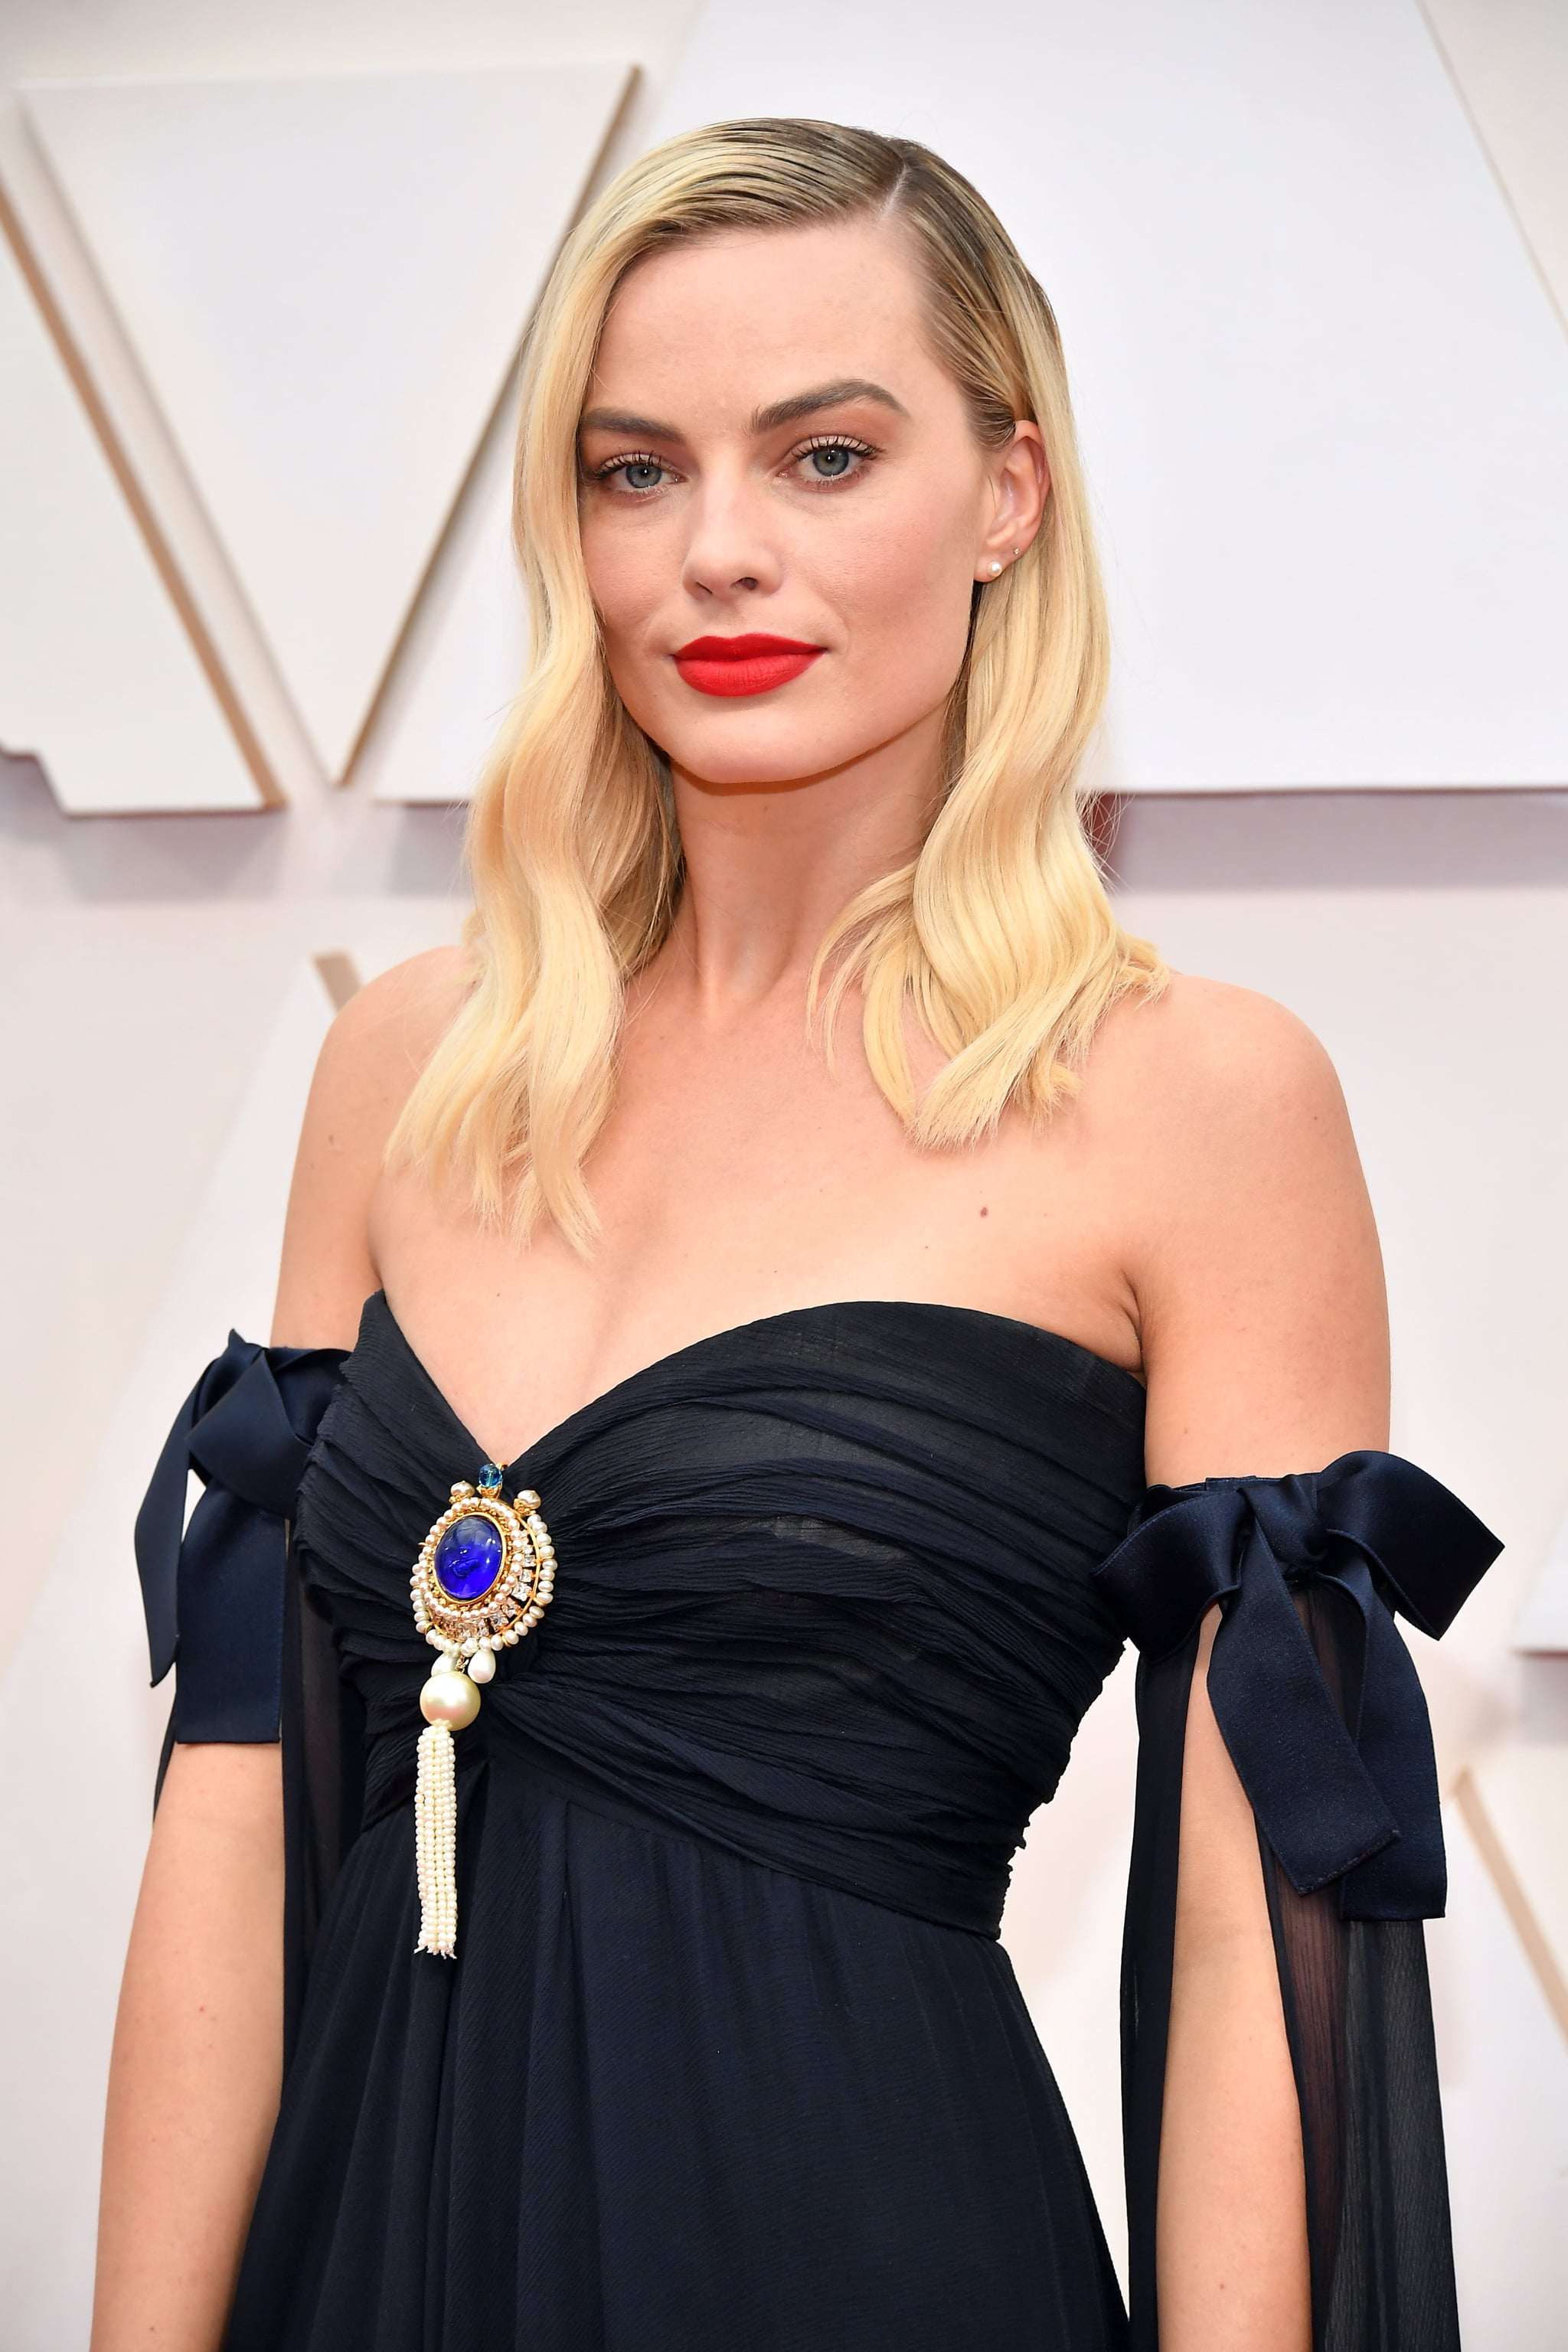 Margot Robbie At The Oscars 2020 Every Sexy Oscars Red Carpet